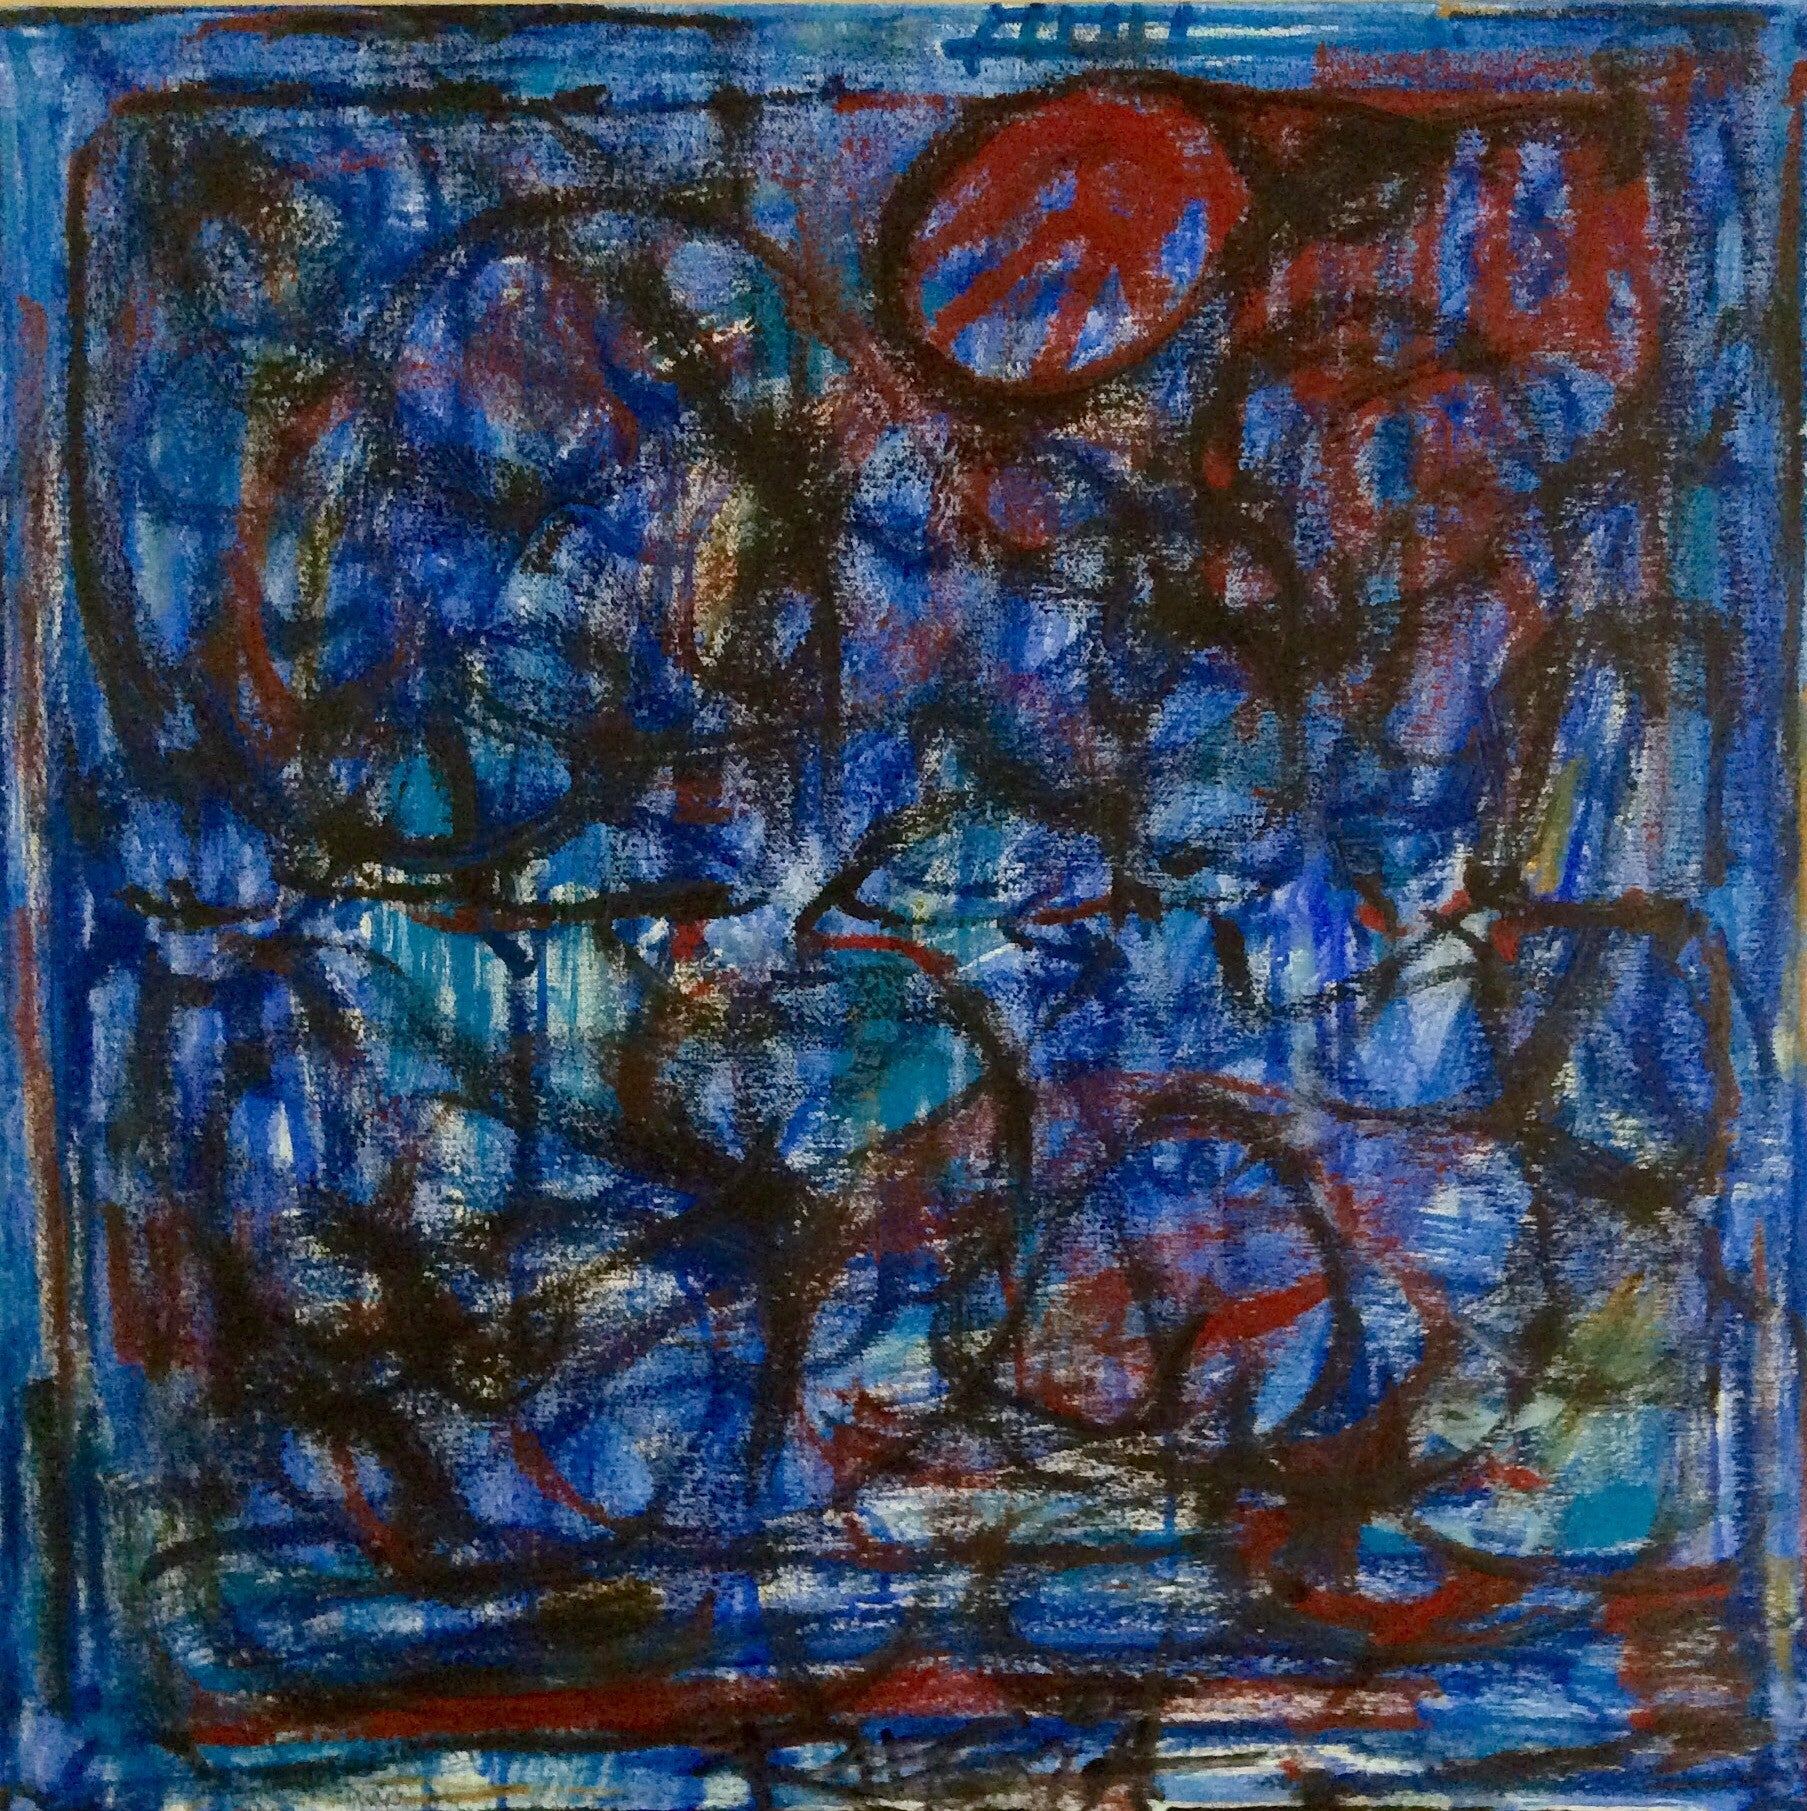 BLUE NIGHT - ORIGINAL Abstract Contemporary Painting Original